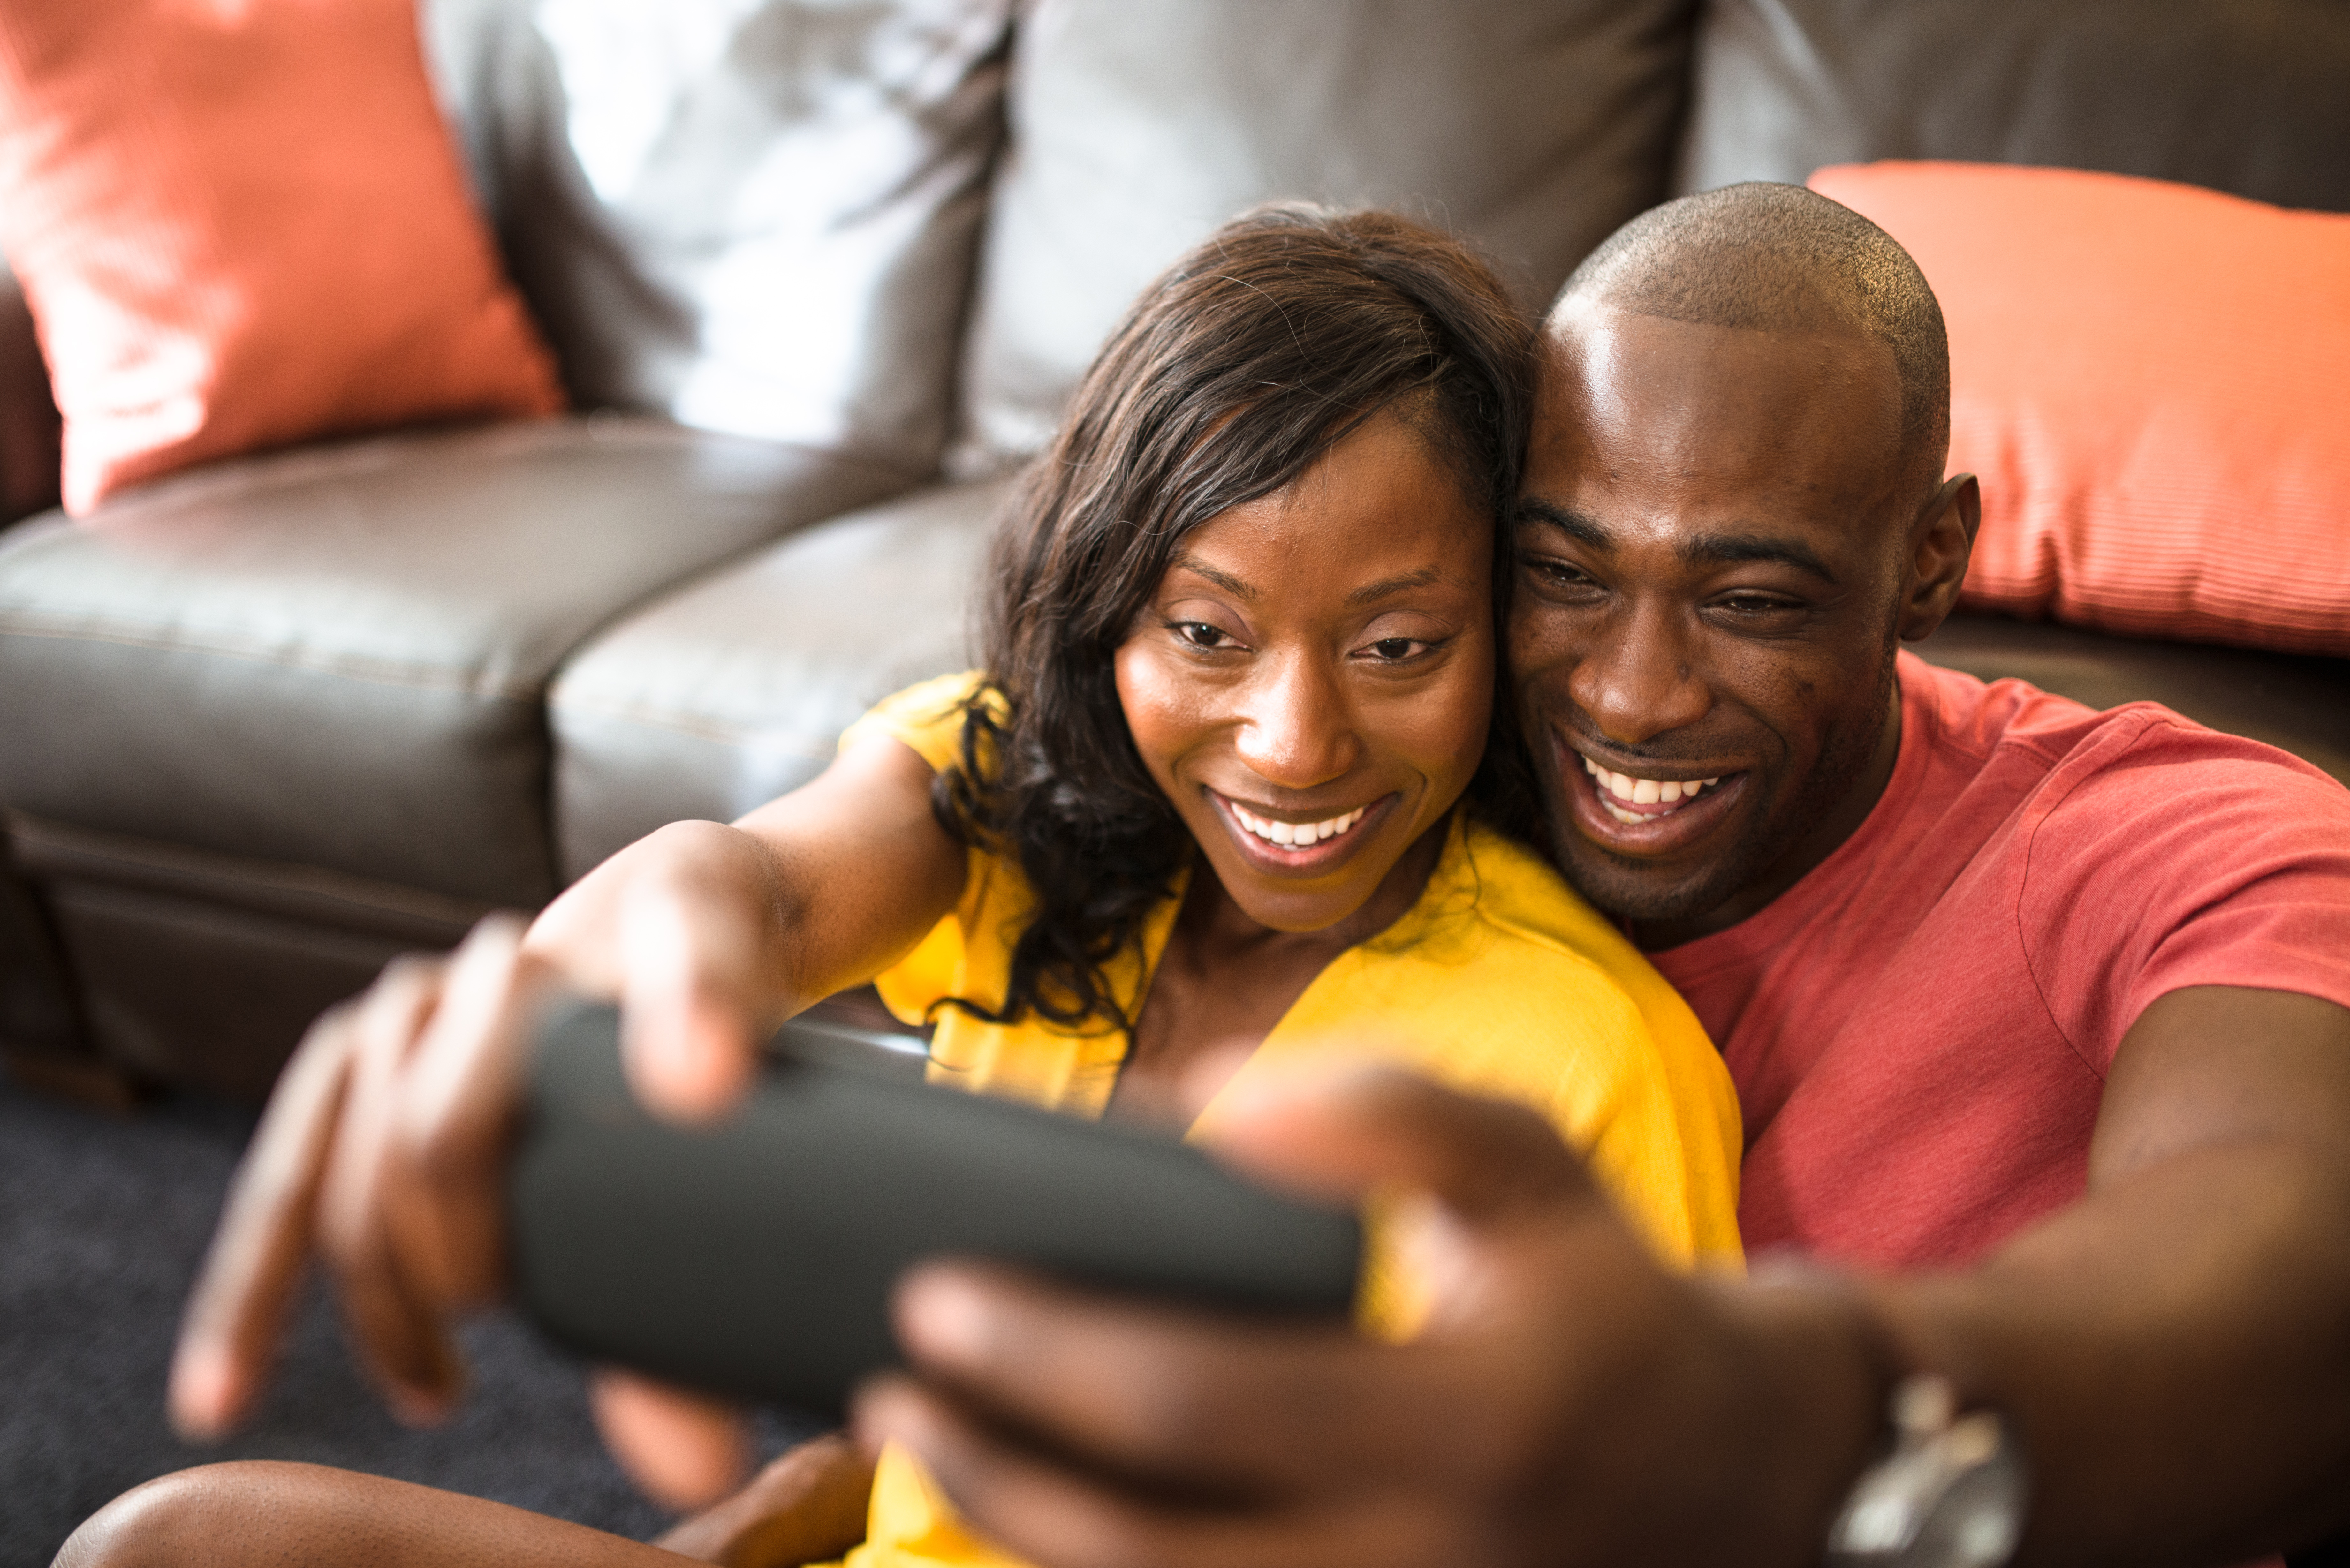 afro couple take a selfie on the couch